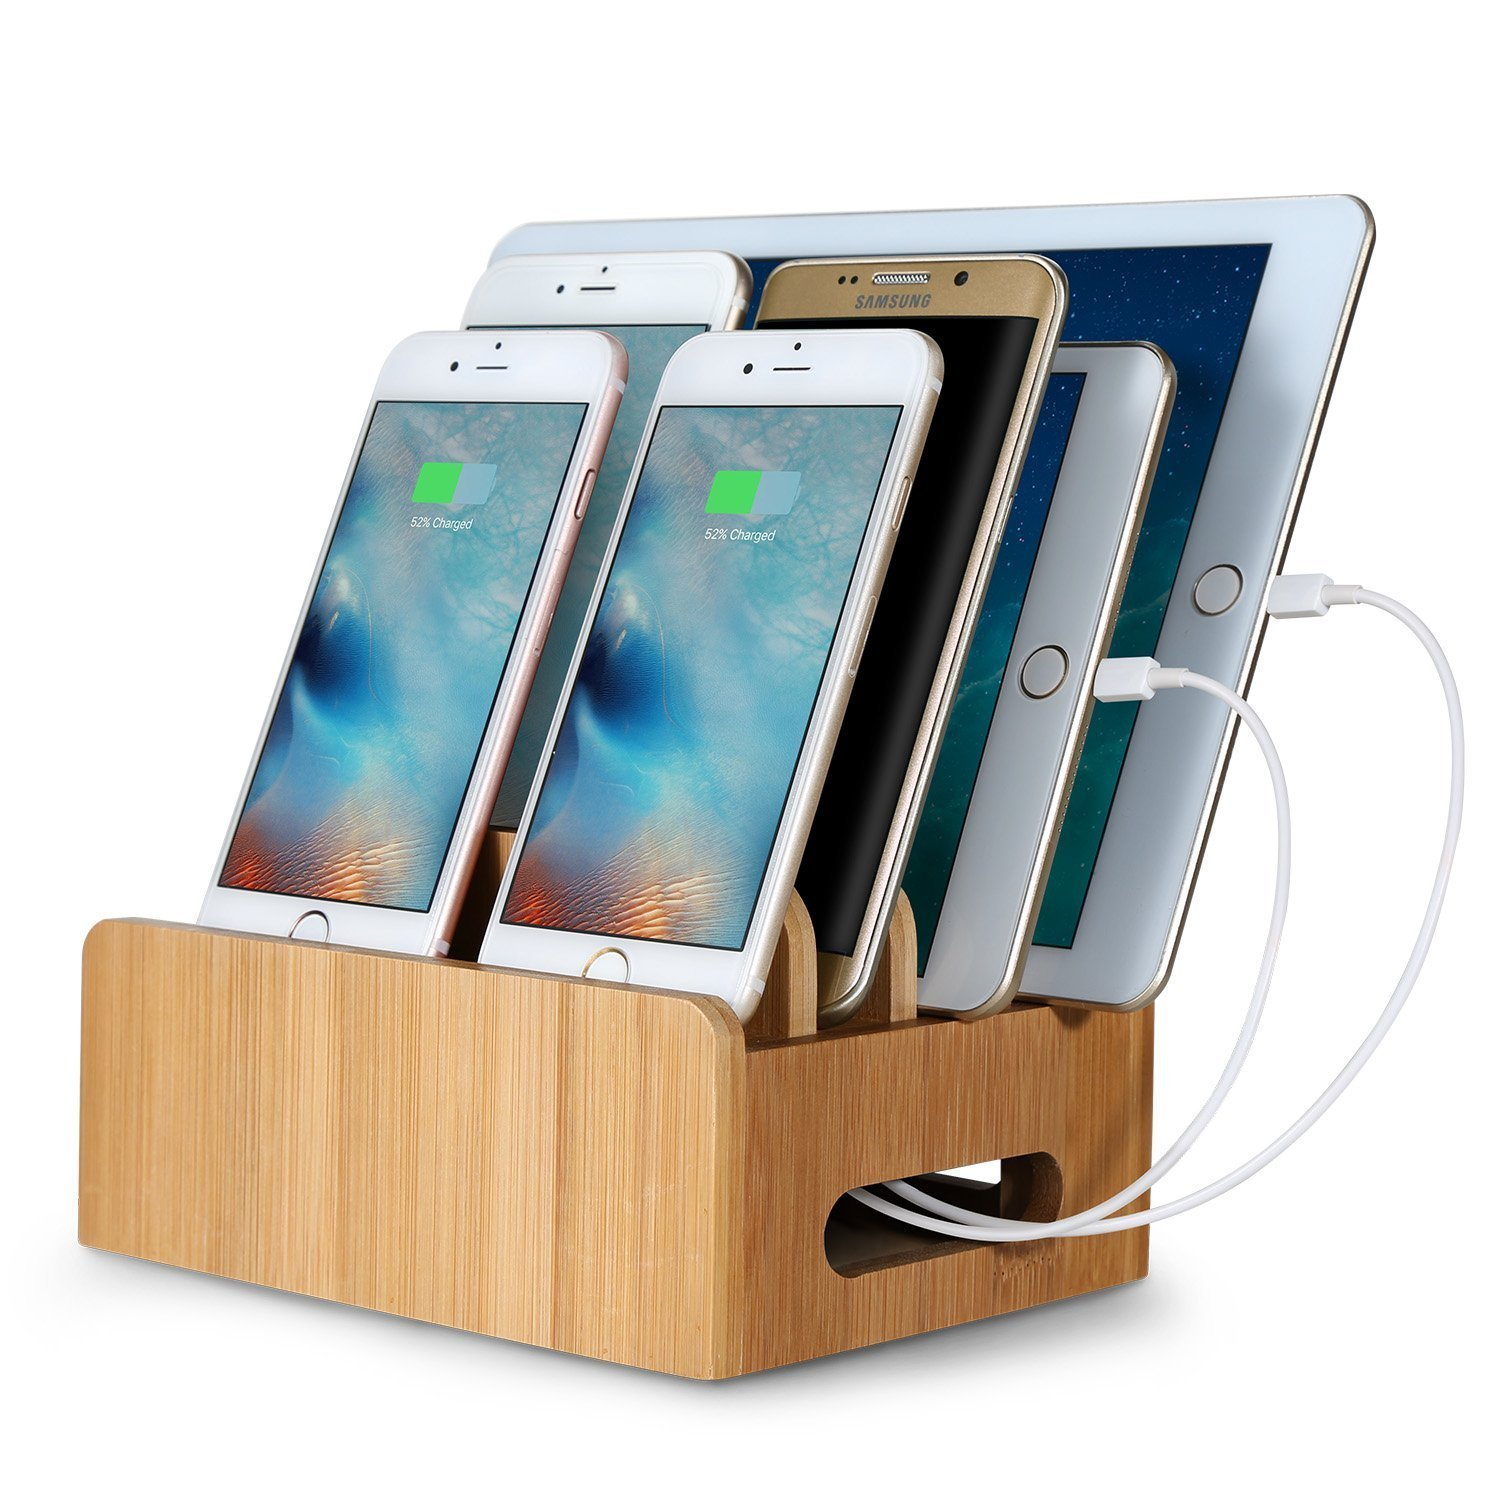 Tech Desk Decor: Bamboo Charging Station